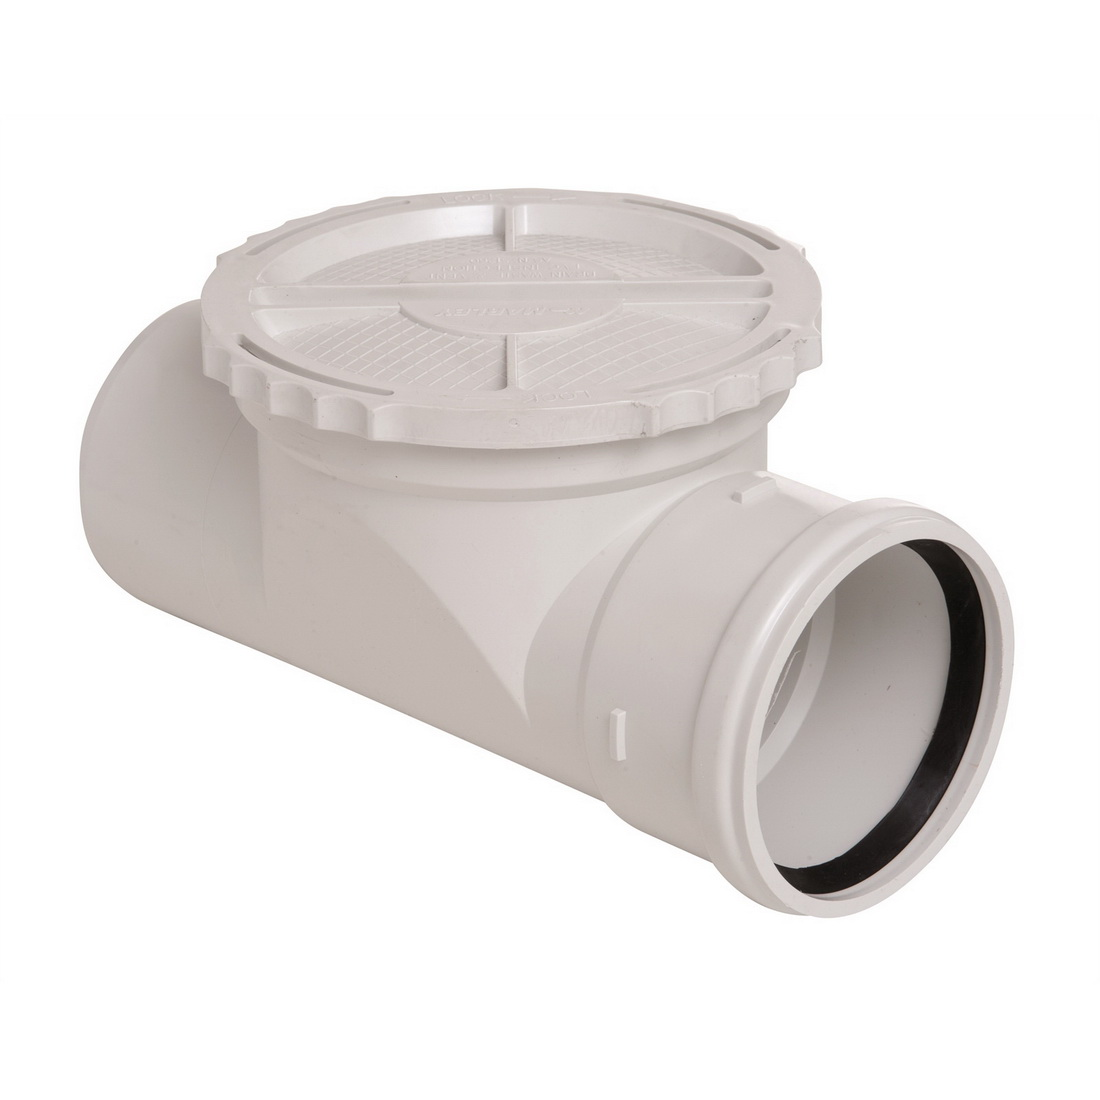 TD Plastics Inspection Downpipe with Riser 100mm 1529.1